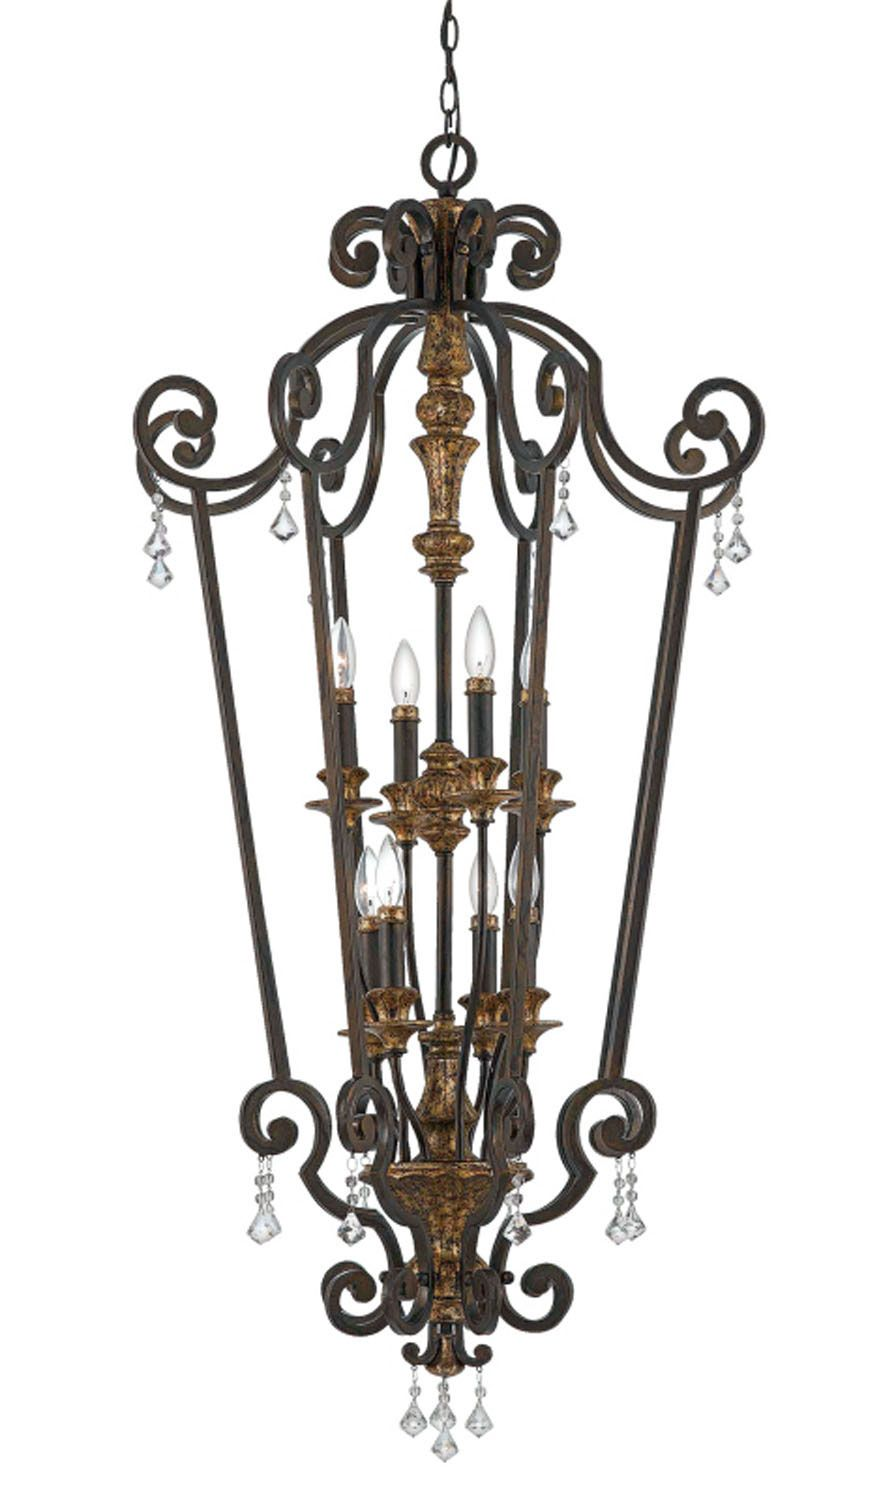 Exceptional Product Catalog U2013 Southern Lighting Gallery Awesome Design